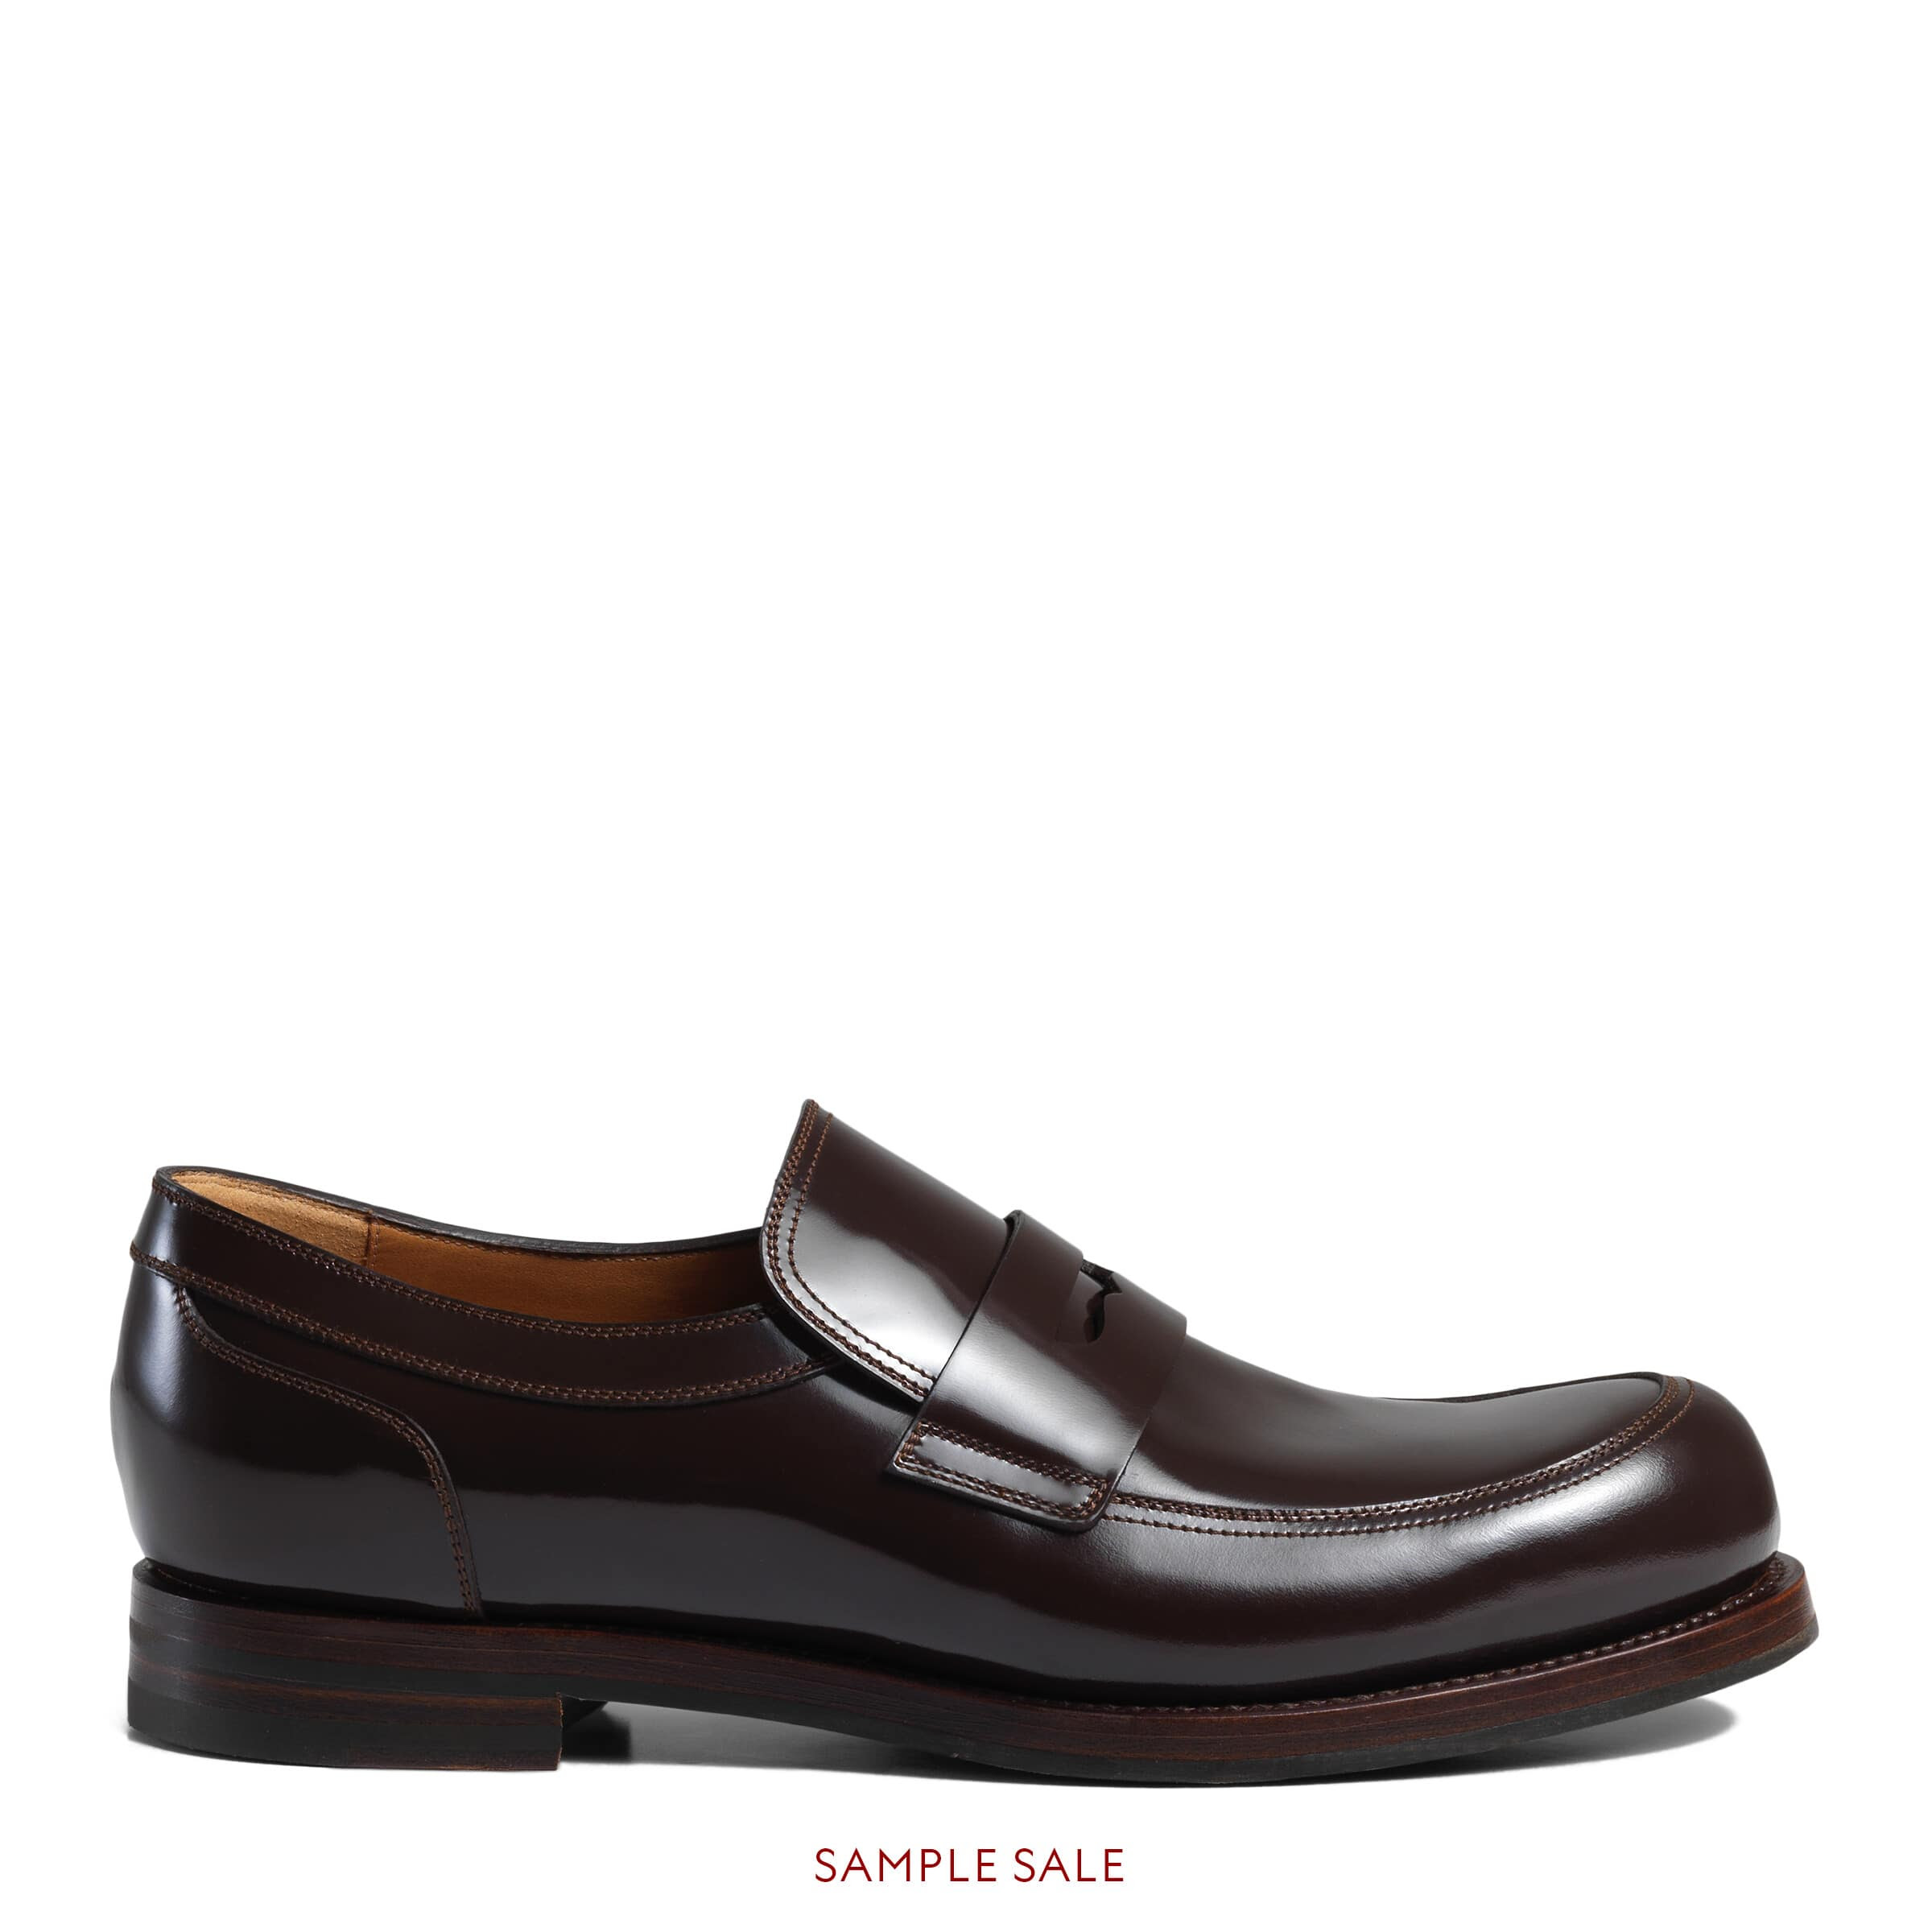 Gucci Men - Shiny leather penny loafer - 386541DKE002140